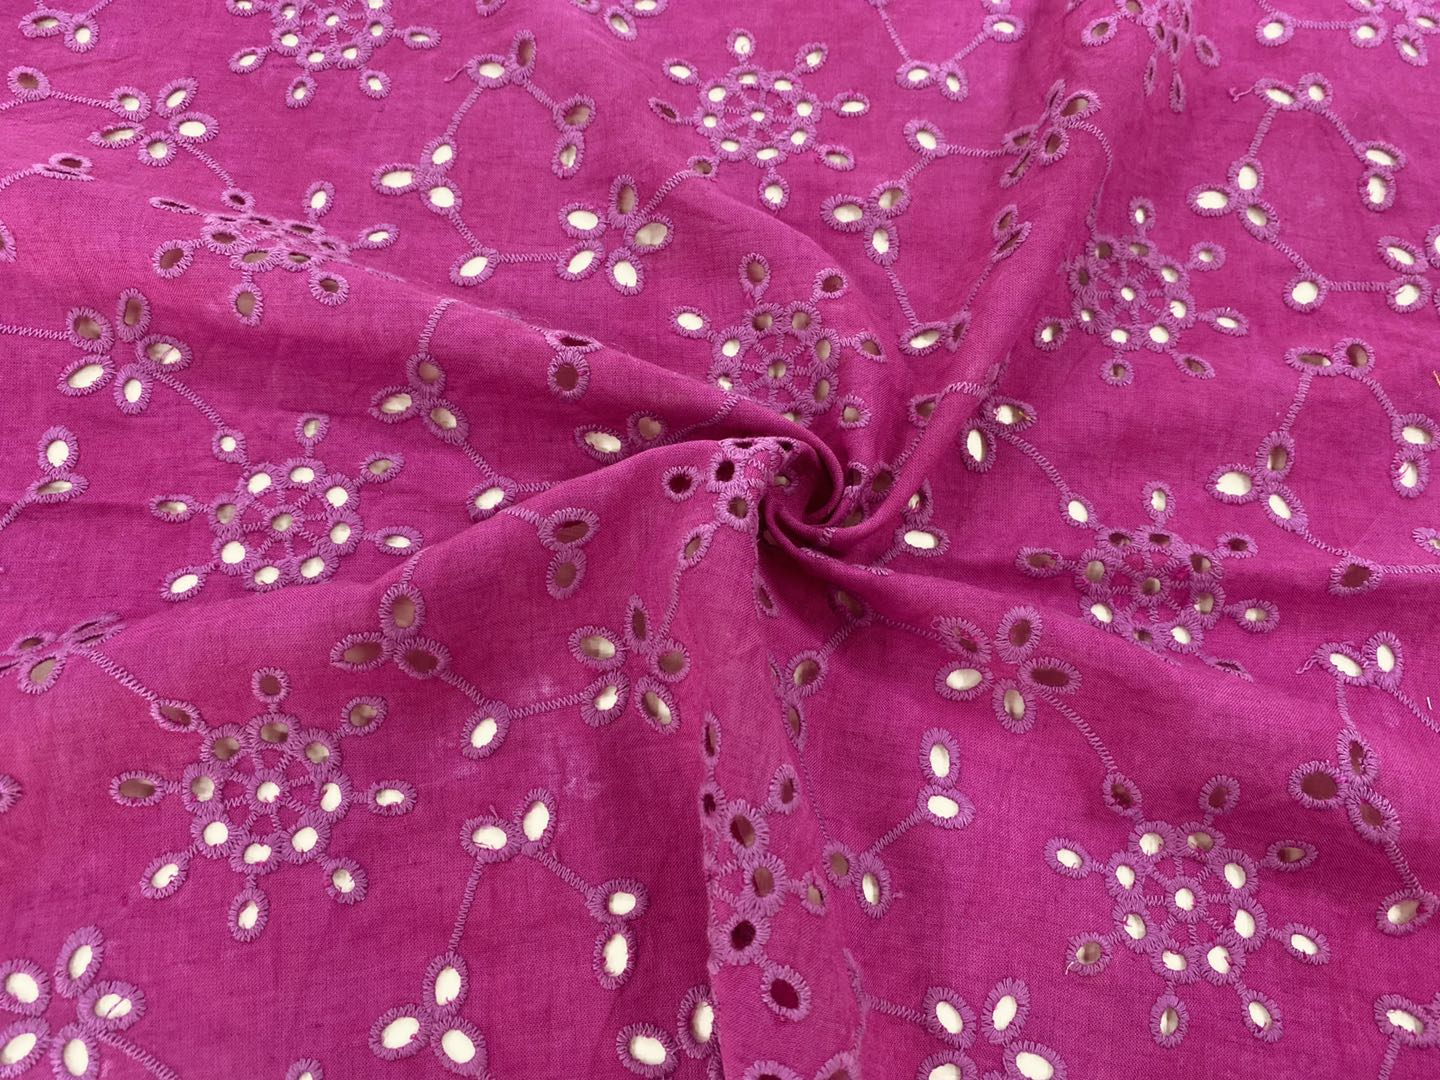 Fuschia Cotton Eyelet Embroidery FabricFuschia Cotton Eyelet Embroidery Fabric